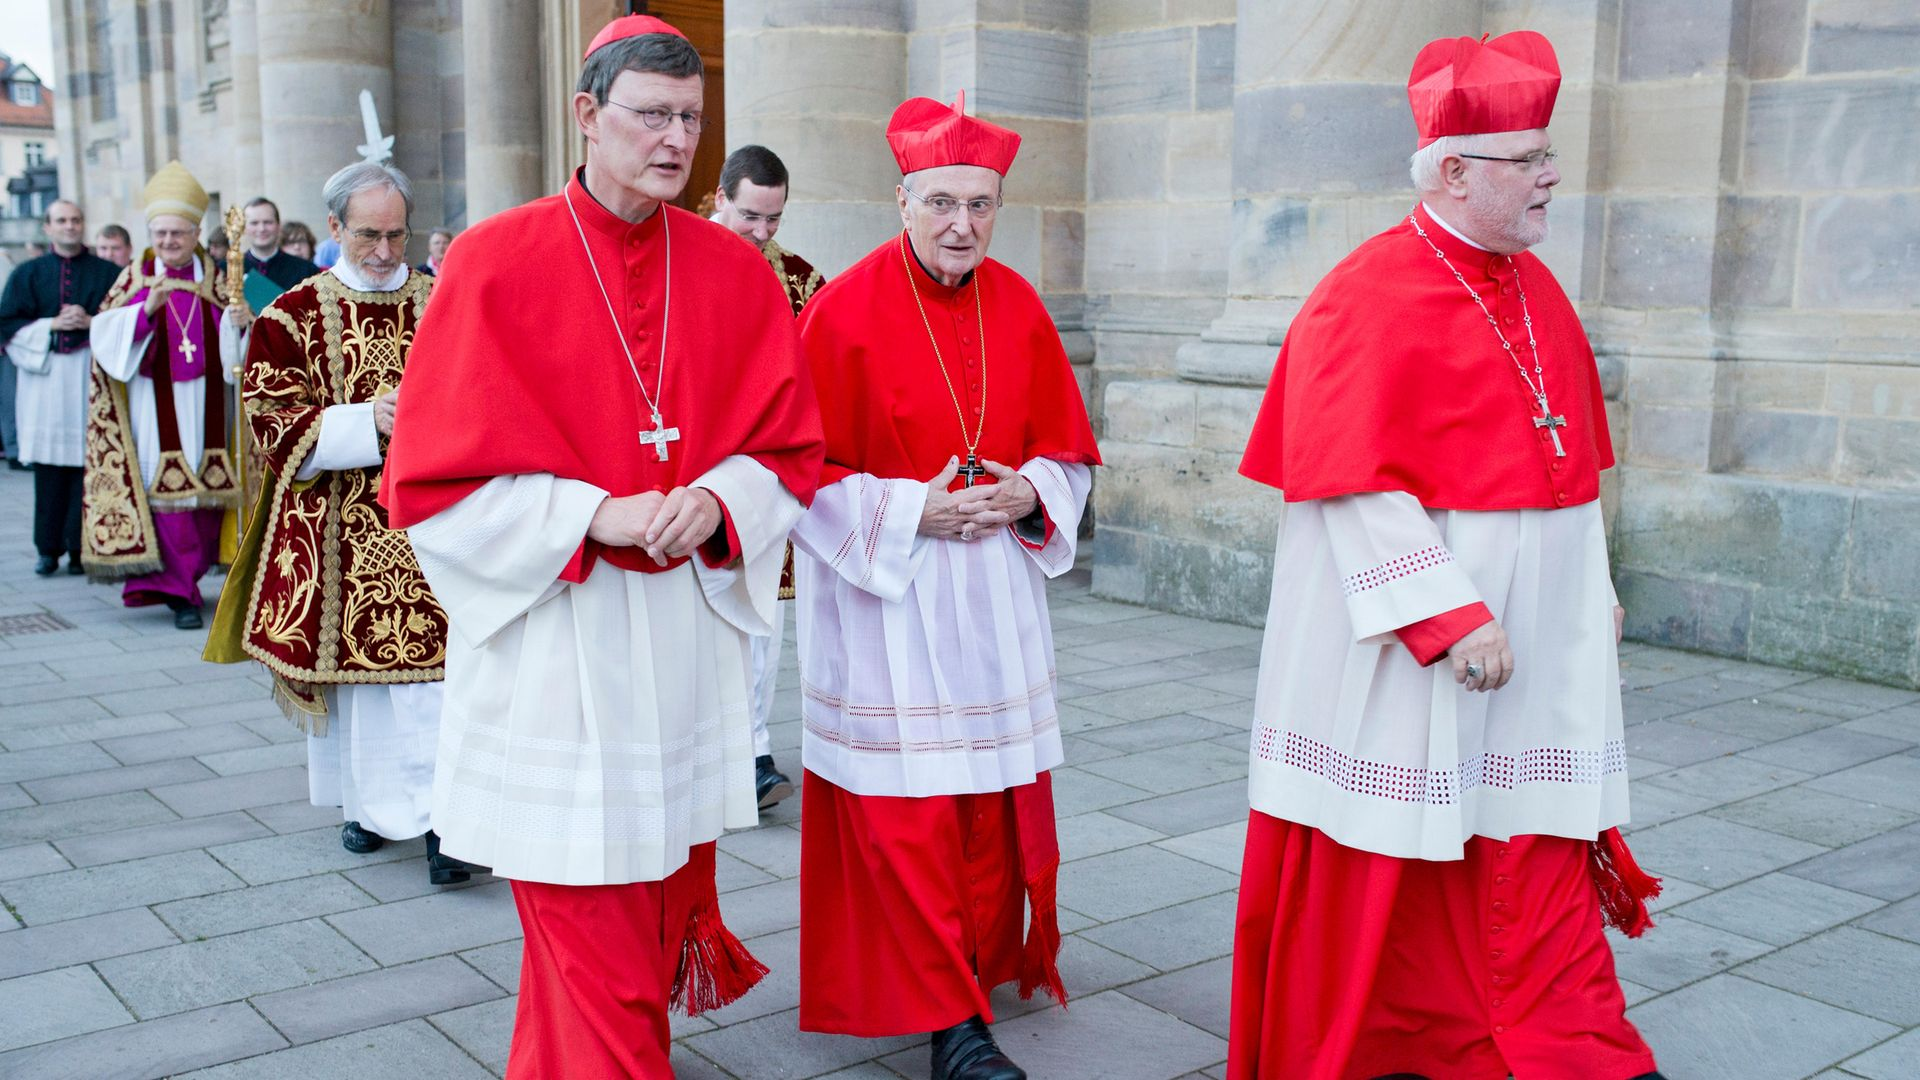 TALE OF TWO CARDINALS: Rainer Maria Woelki (left) and Reinhard Marx (right), with a third cardinal, Joachim Meisner, in between, in Fulda, Germany, in 2013 - Credit: Photothek via Getty Images